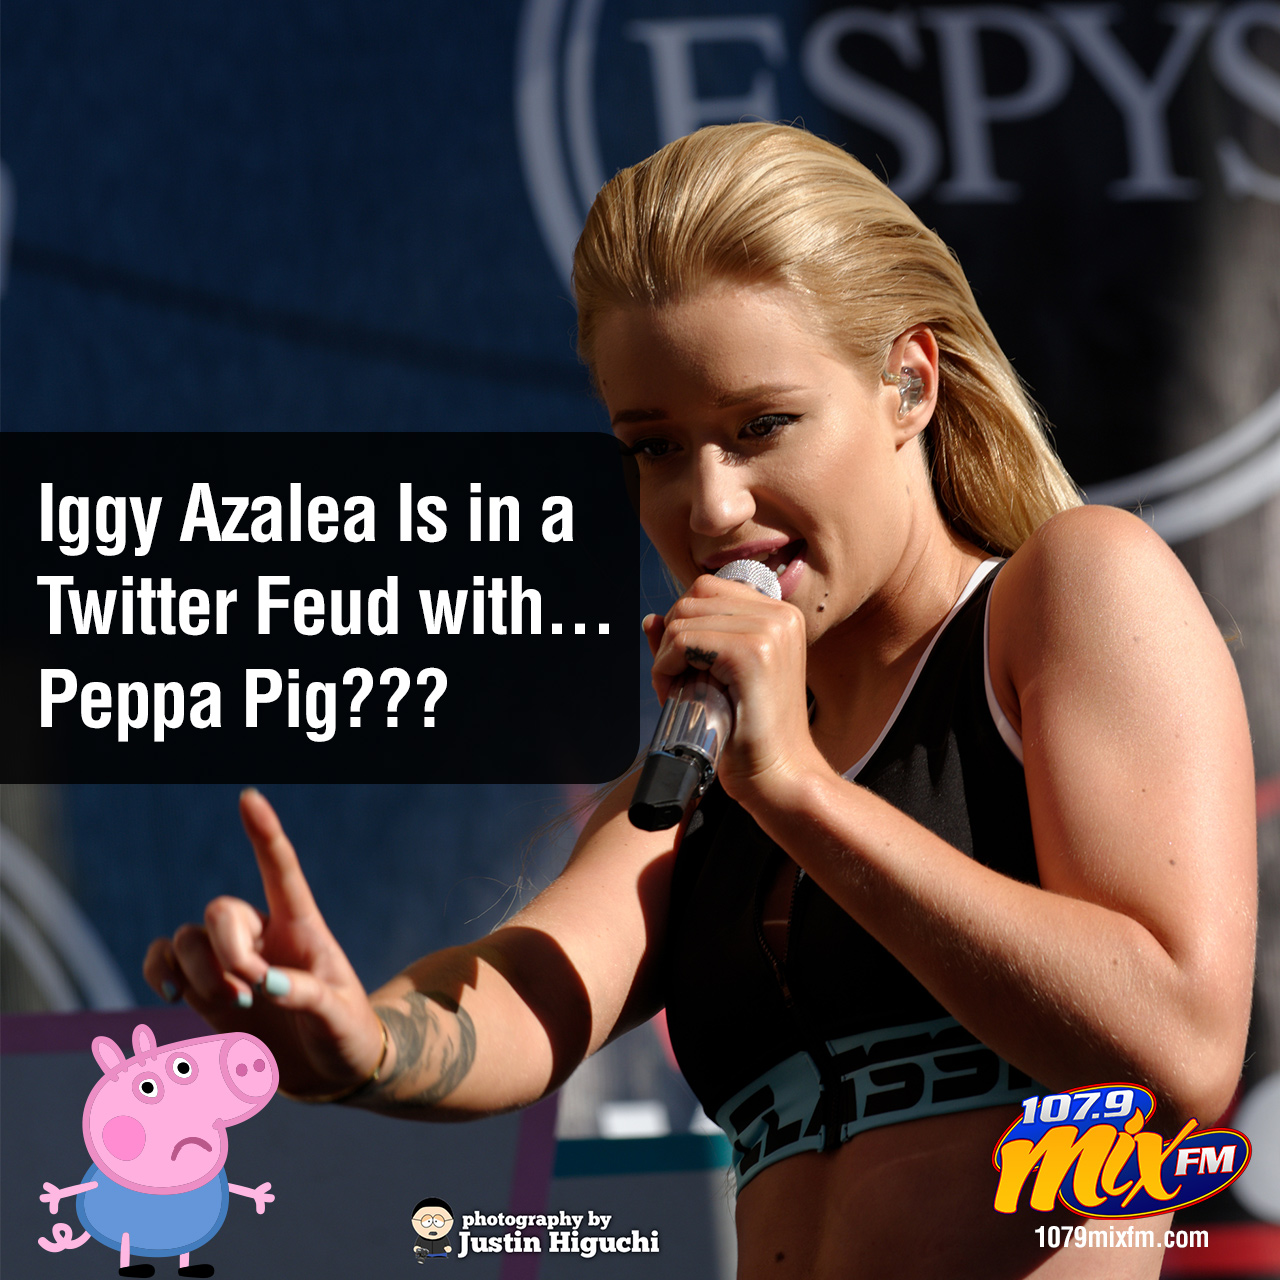 Iggy Azalea Is in a Twitter Feud with . . . Peppa Pig???